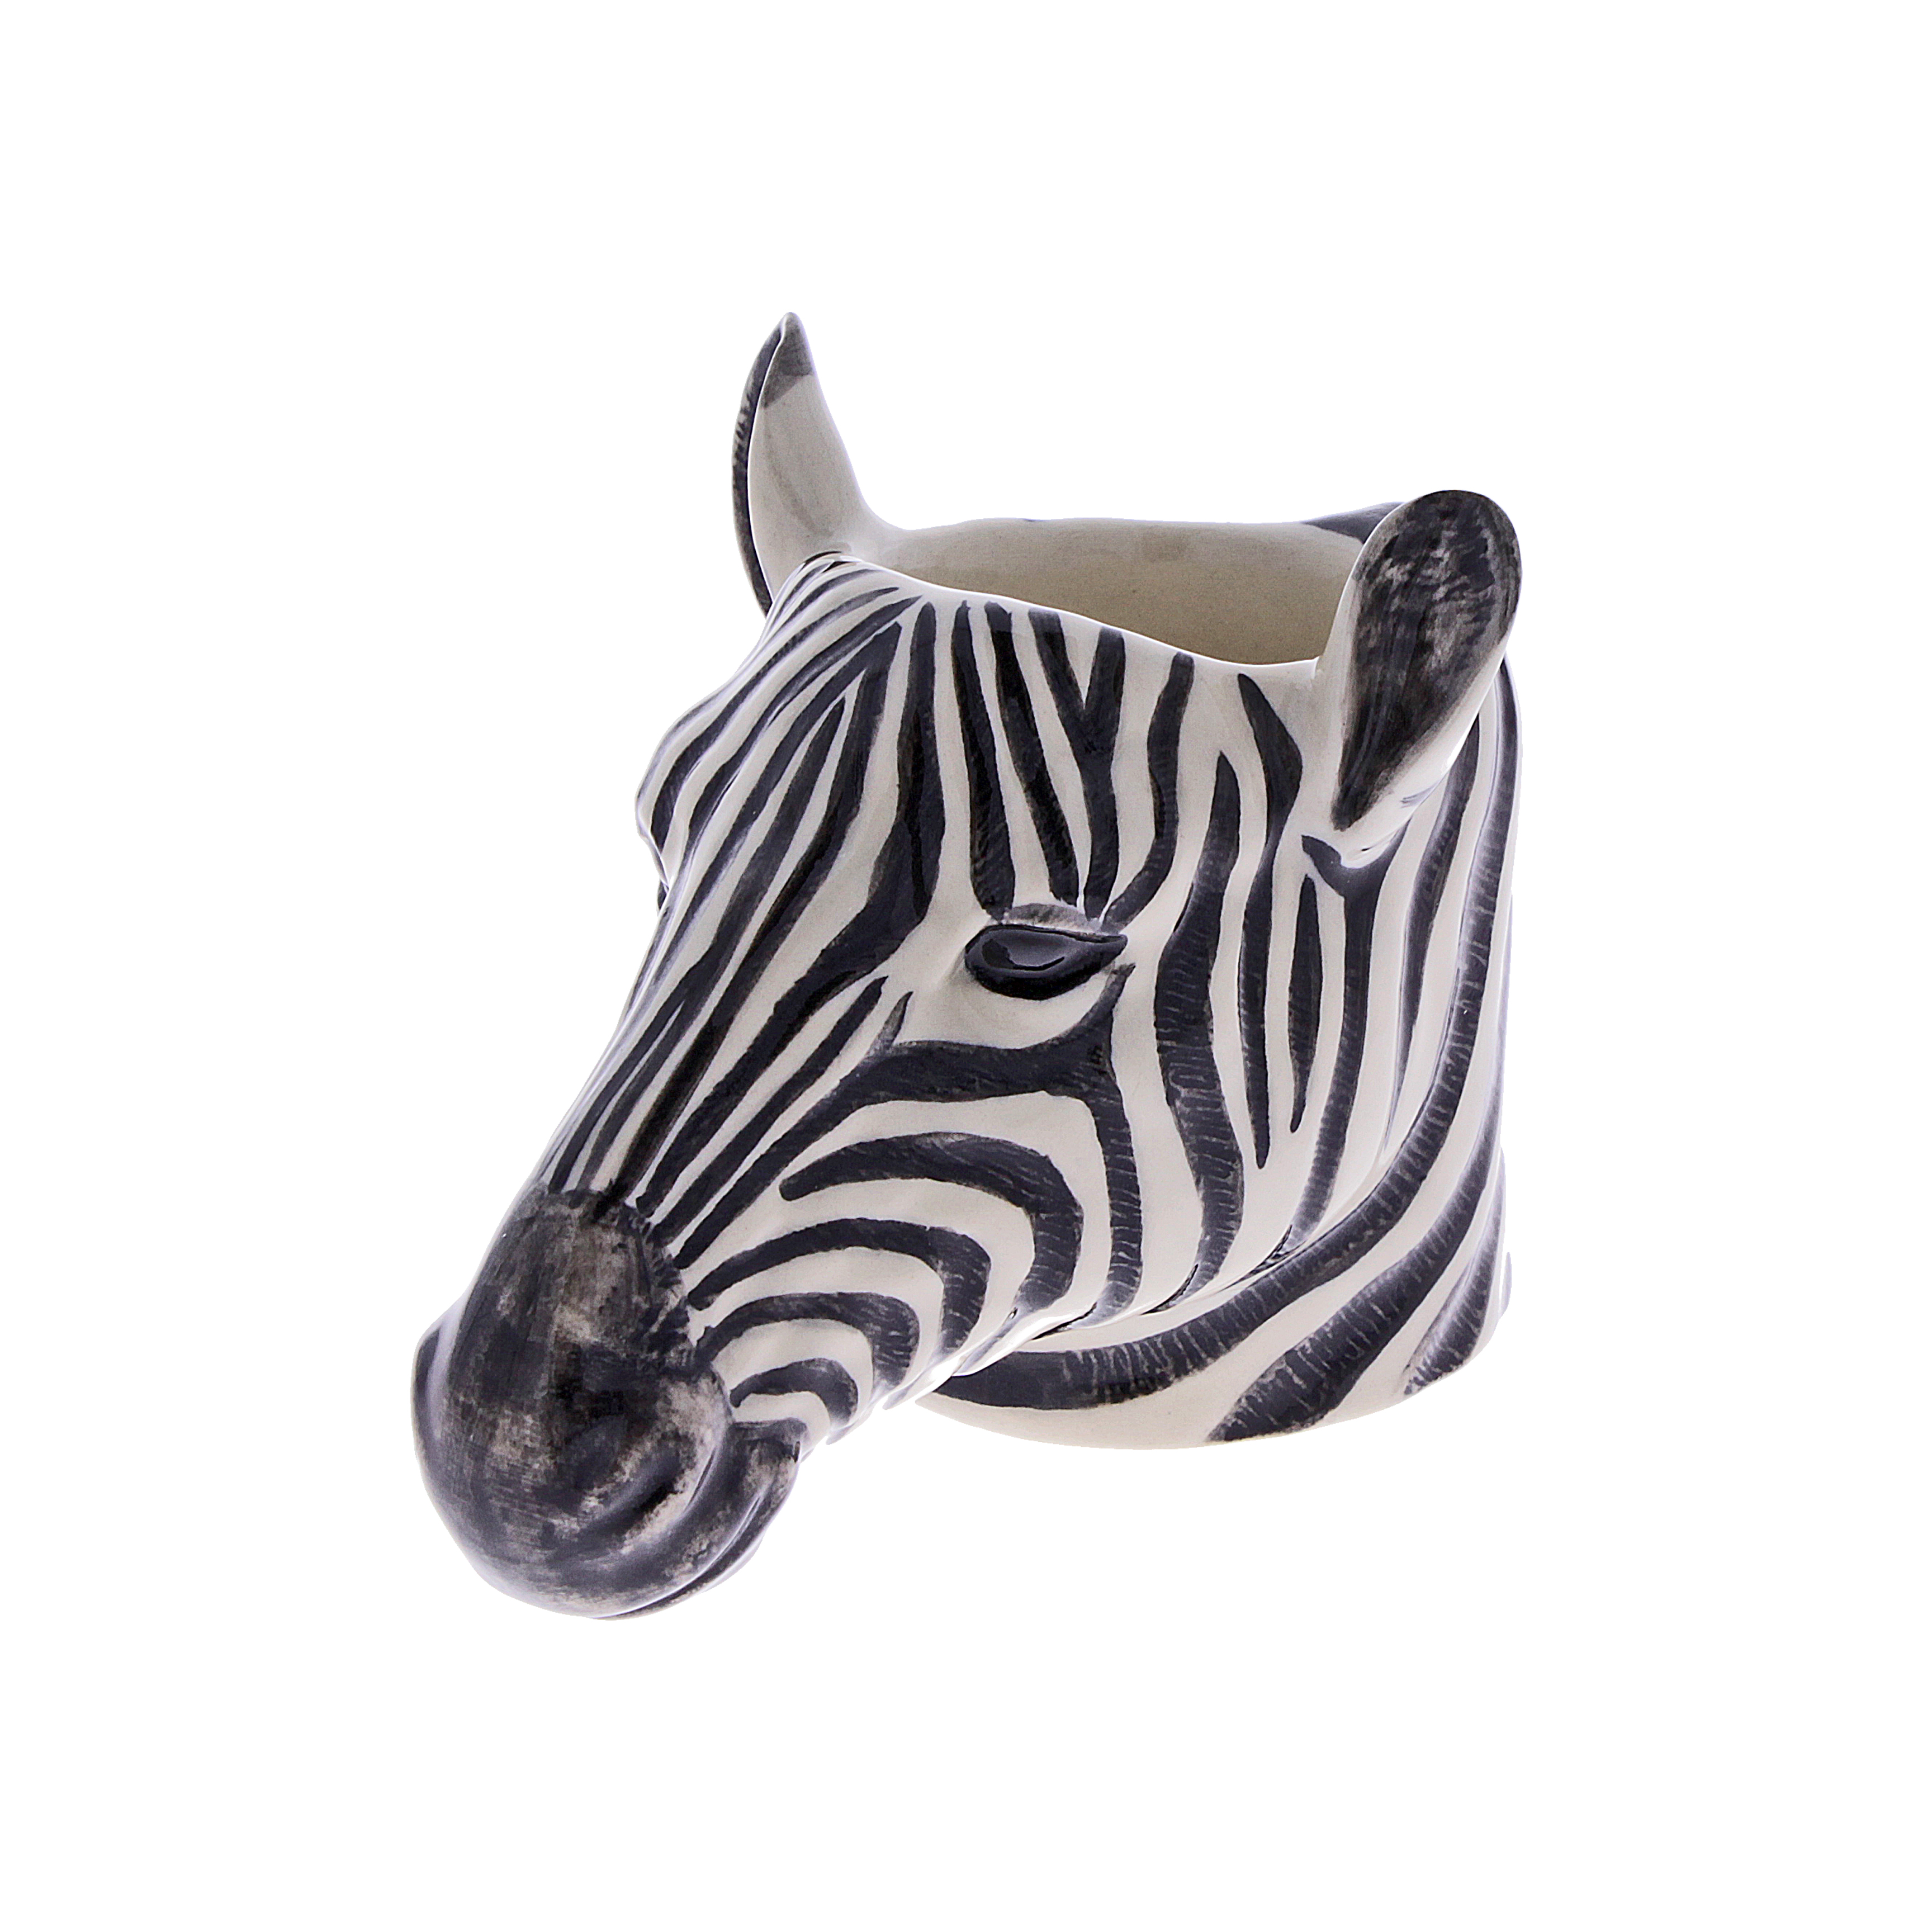 Zebra Face Egg Cup £12.00 www.nhmshop.co.uk